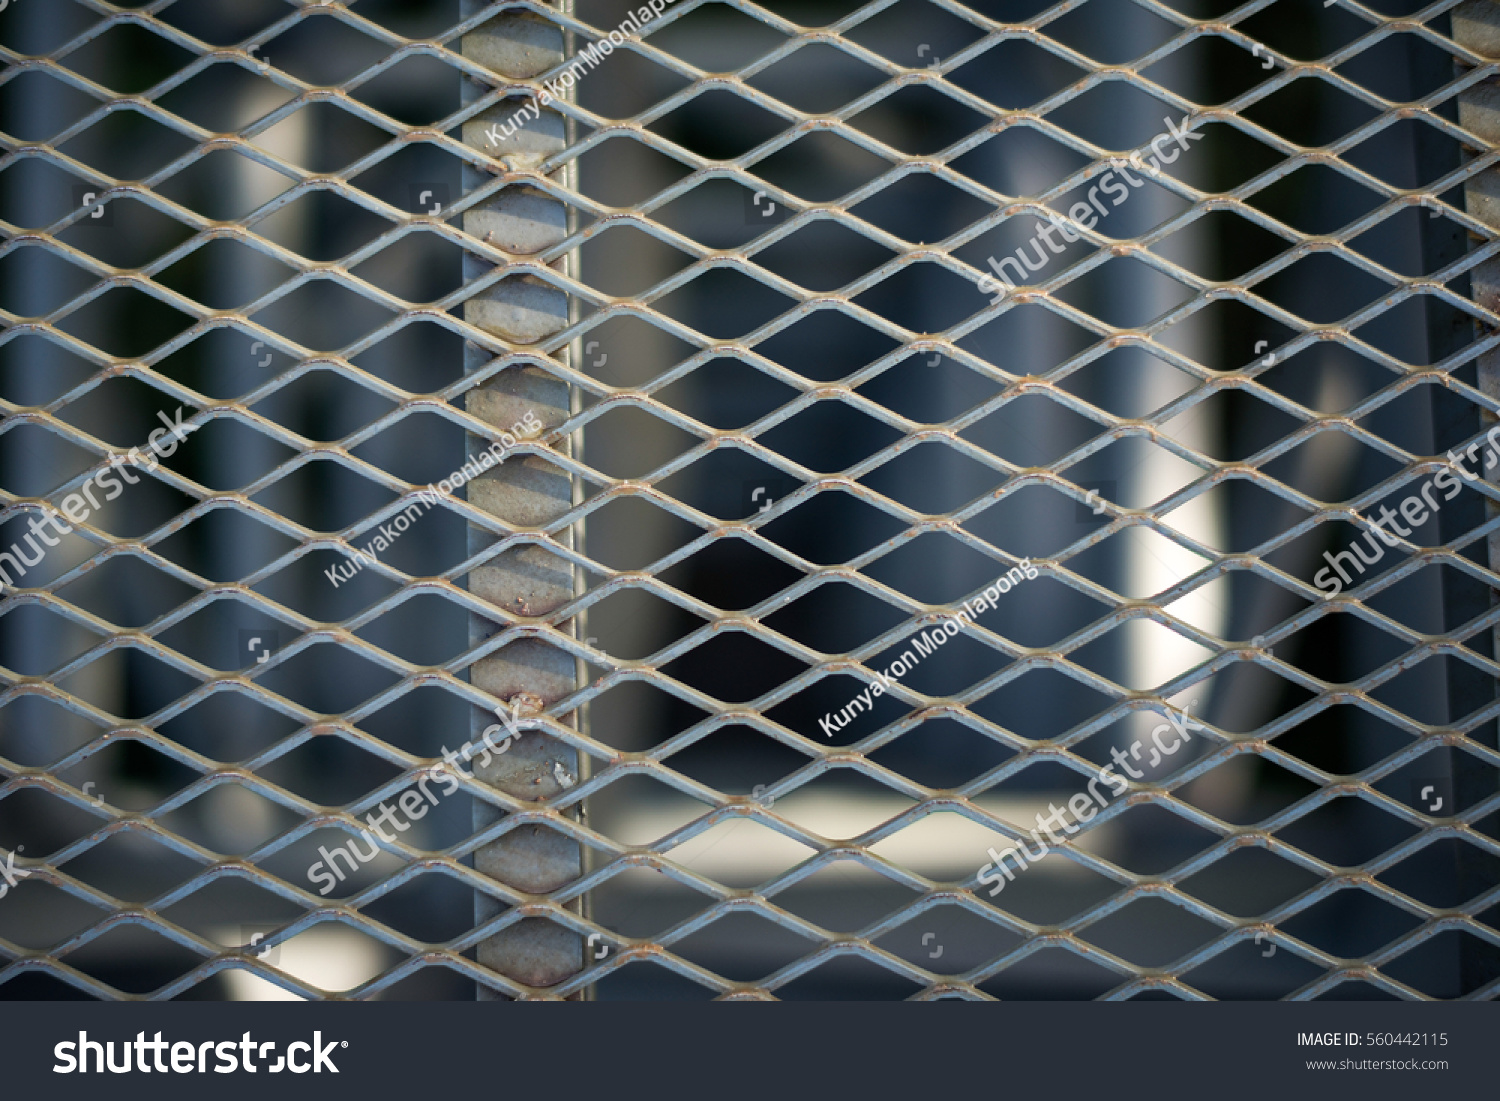 Stainless Steel Wire Mesh Wire Background Stock Photo & Image ...